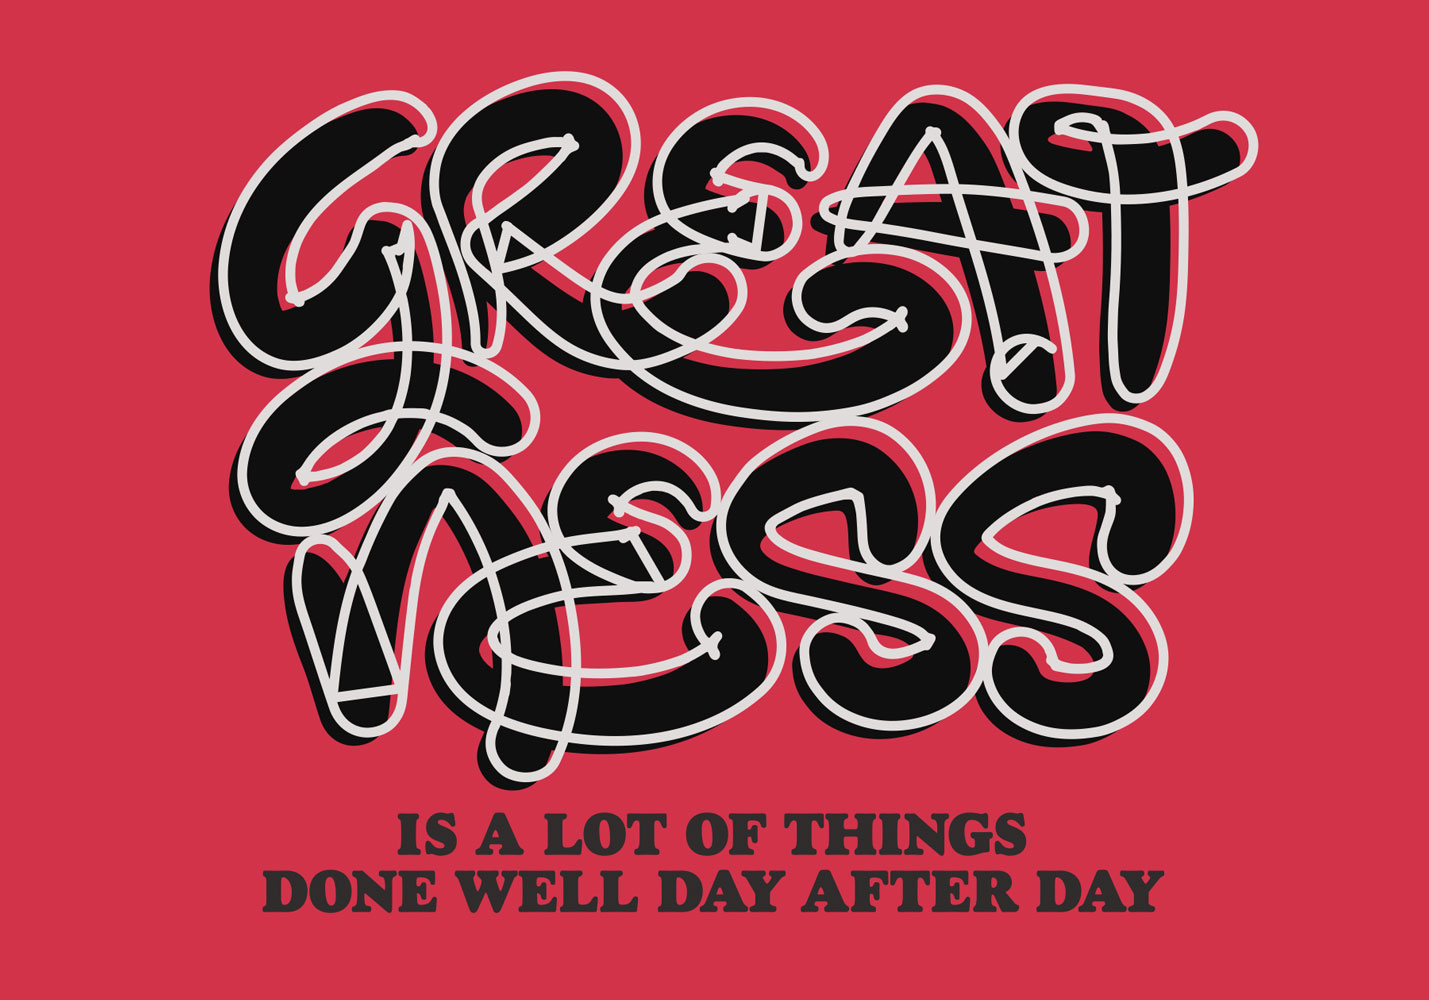 greatness_poster_H